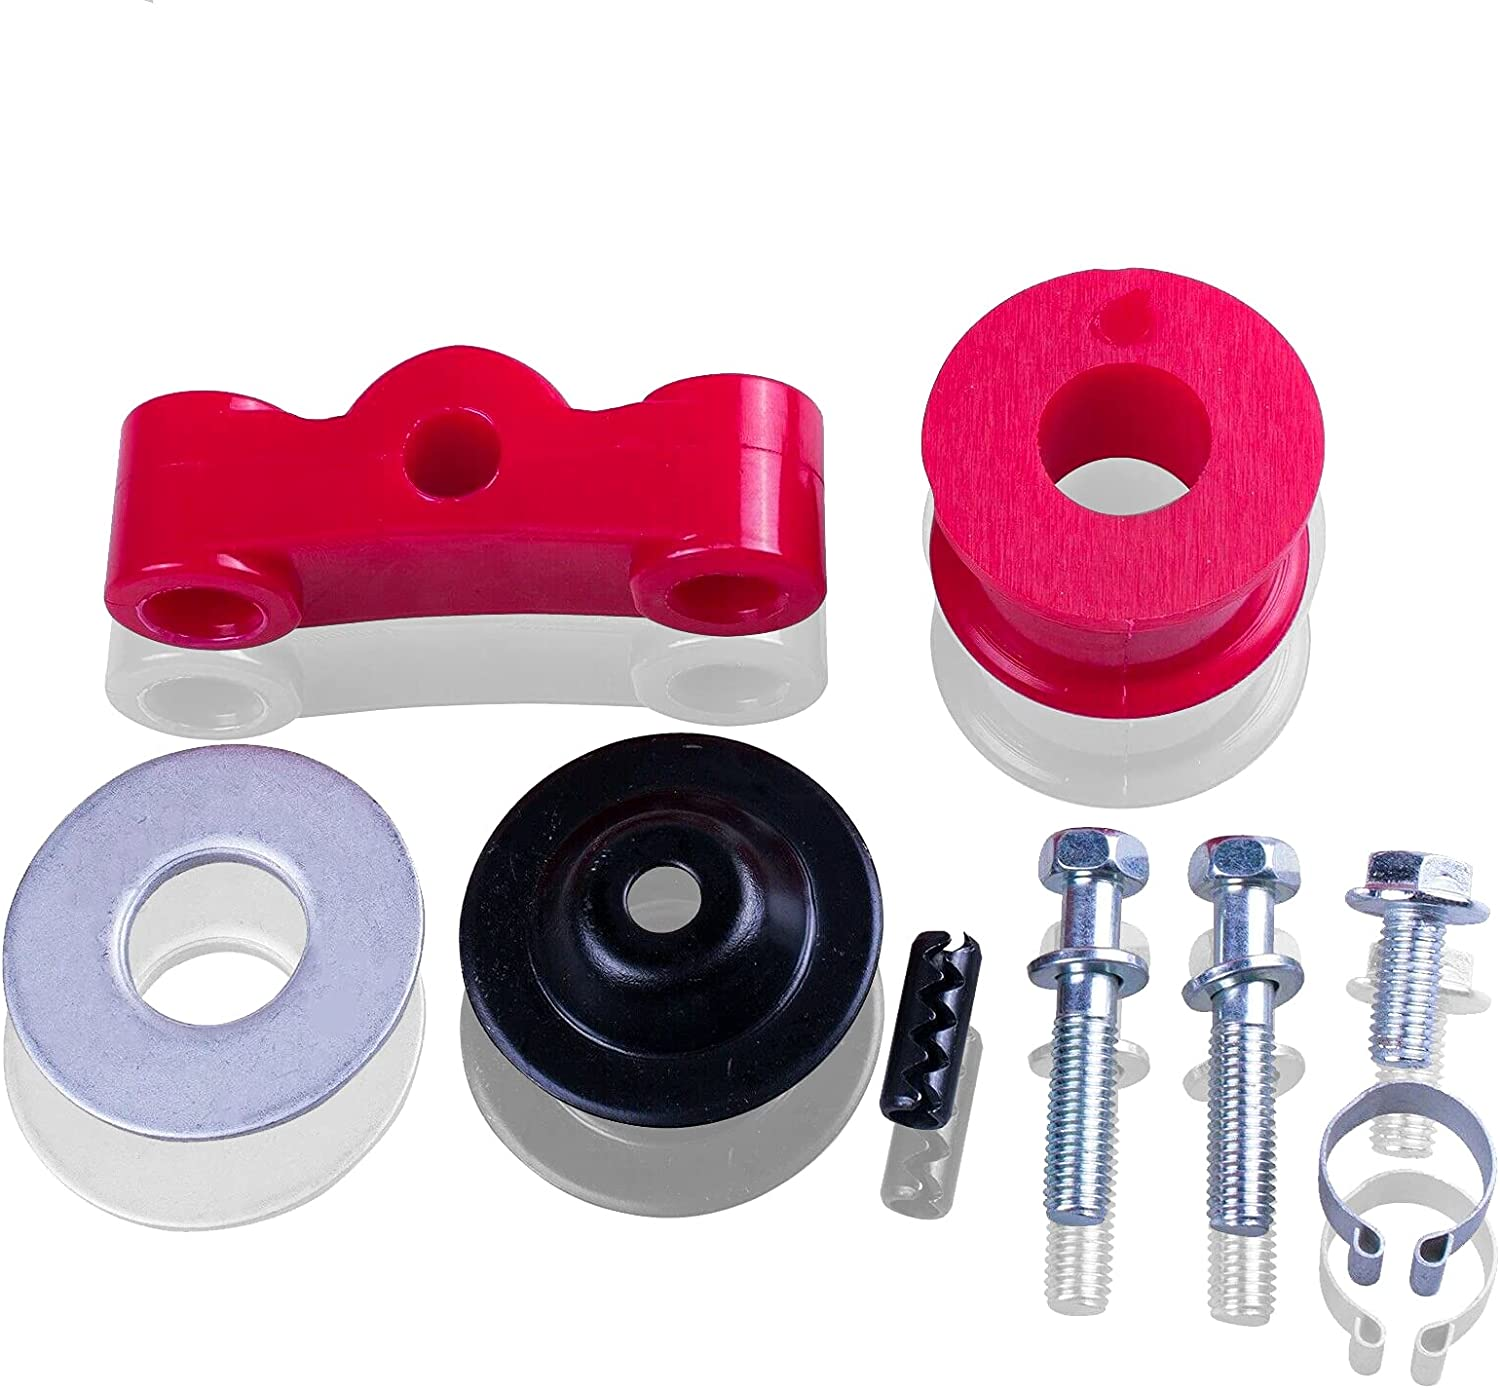 Shift Linkage Hardware shop Pin Clip safety Suspension Bushing Energy Fit